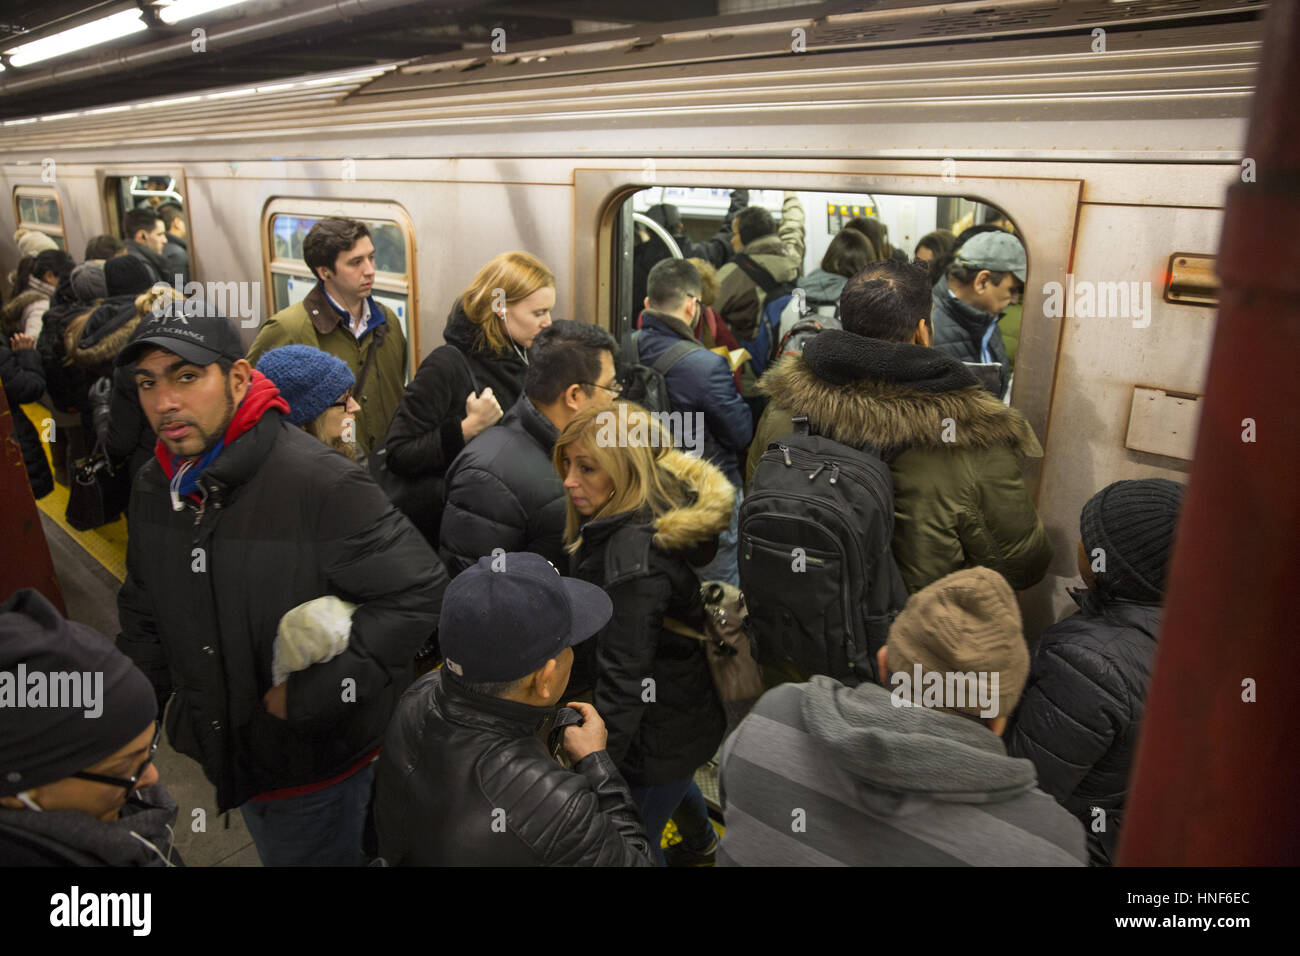 Crowded subway  platform, at 47-50th Sts. Rockefeller Center during the evening rush hour in midtown Manhattan. - Stock Image